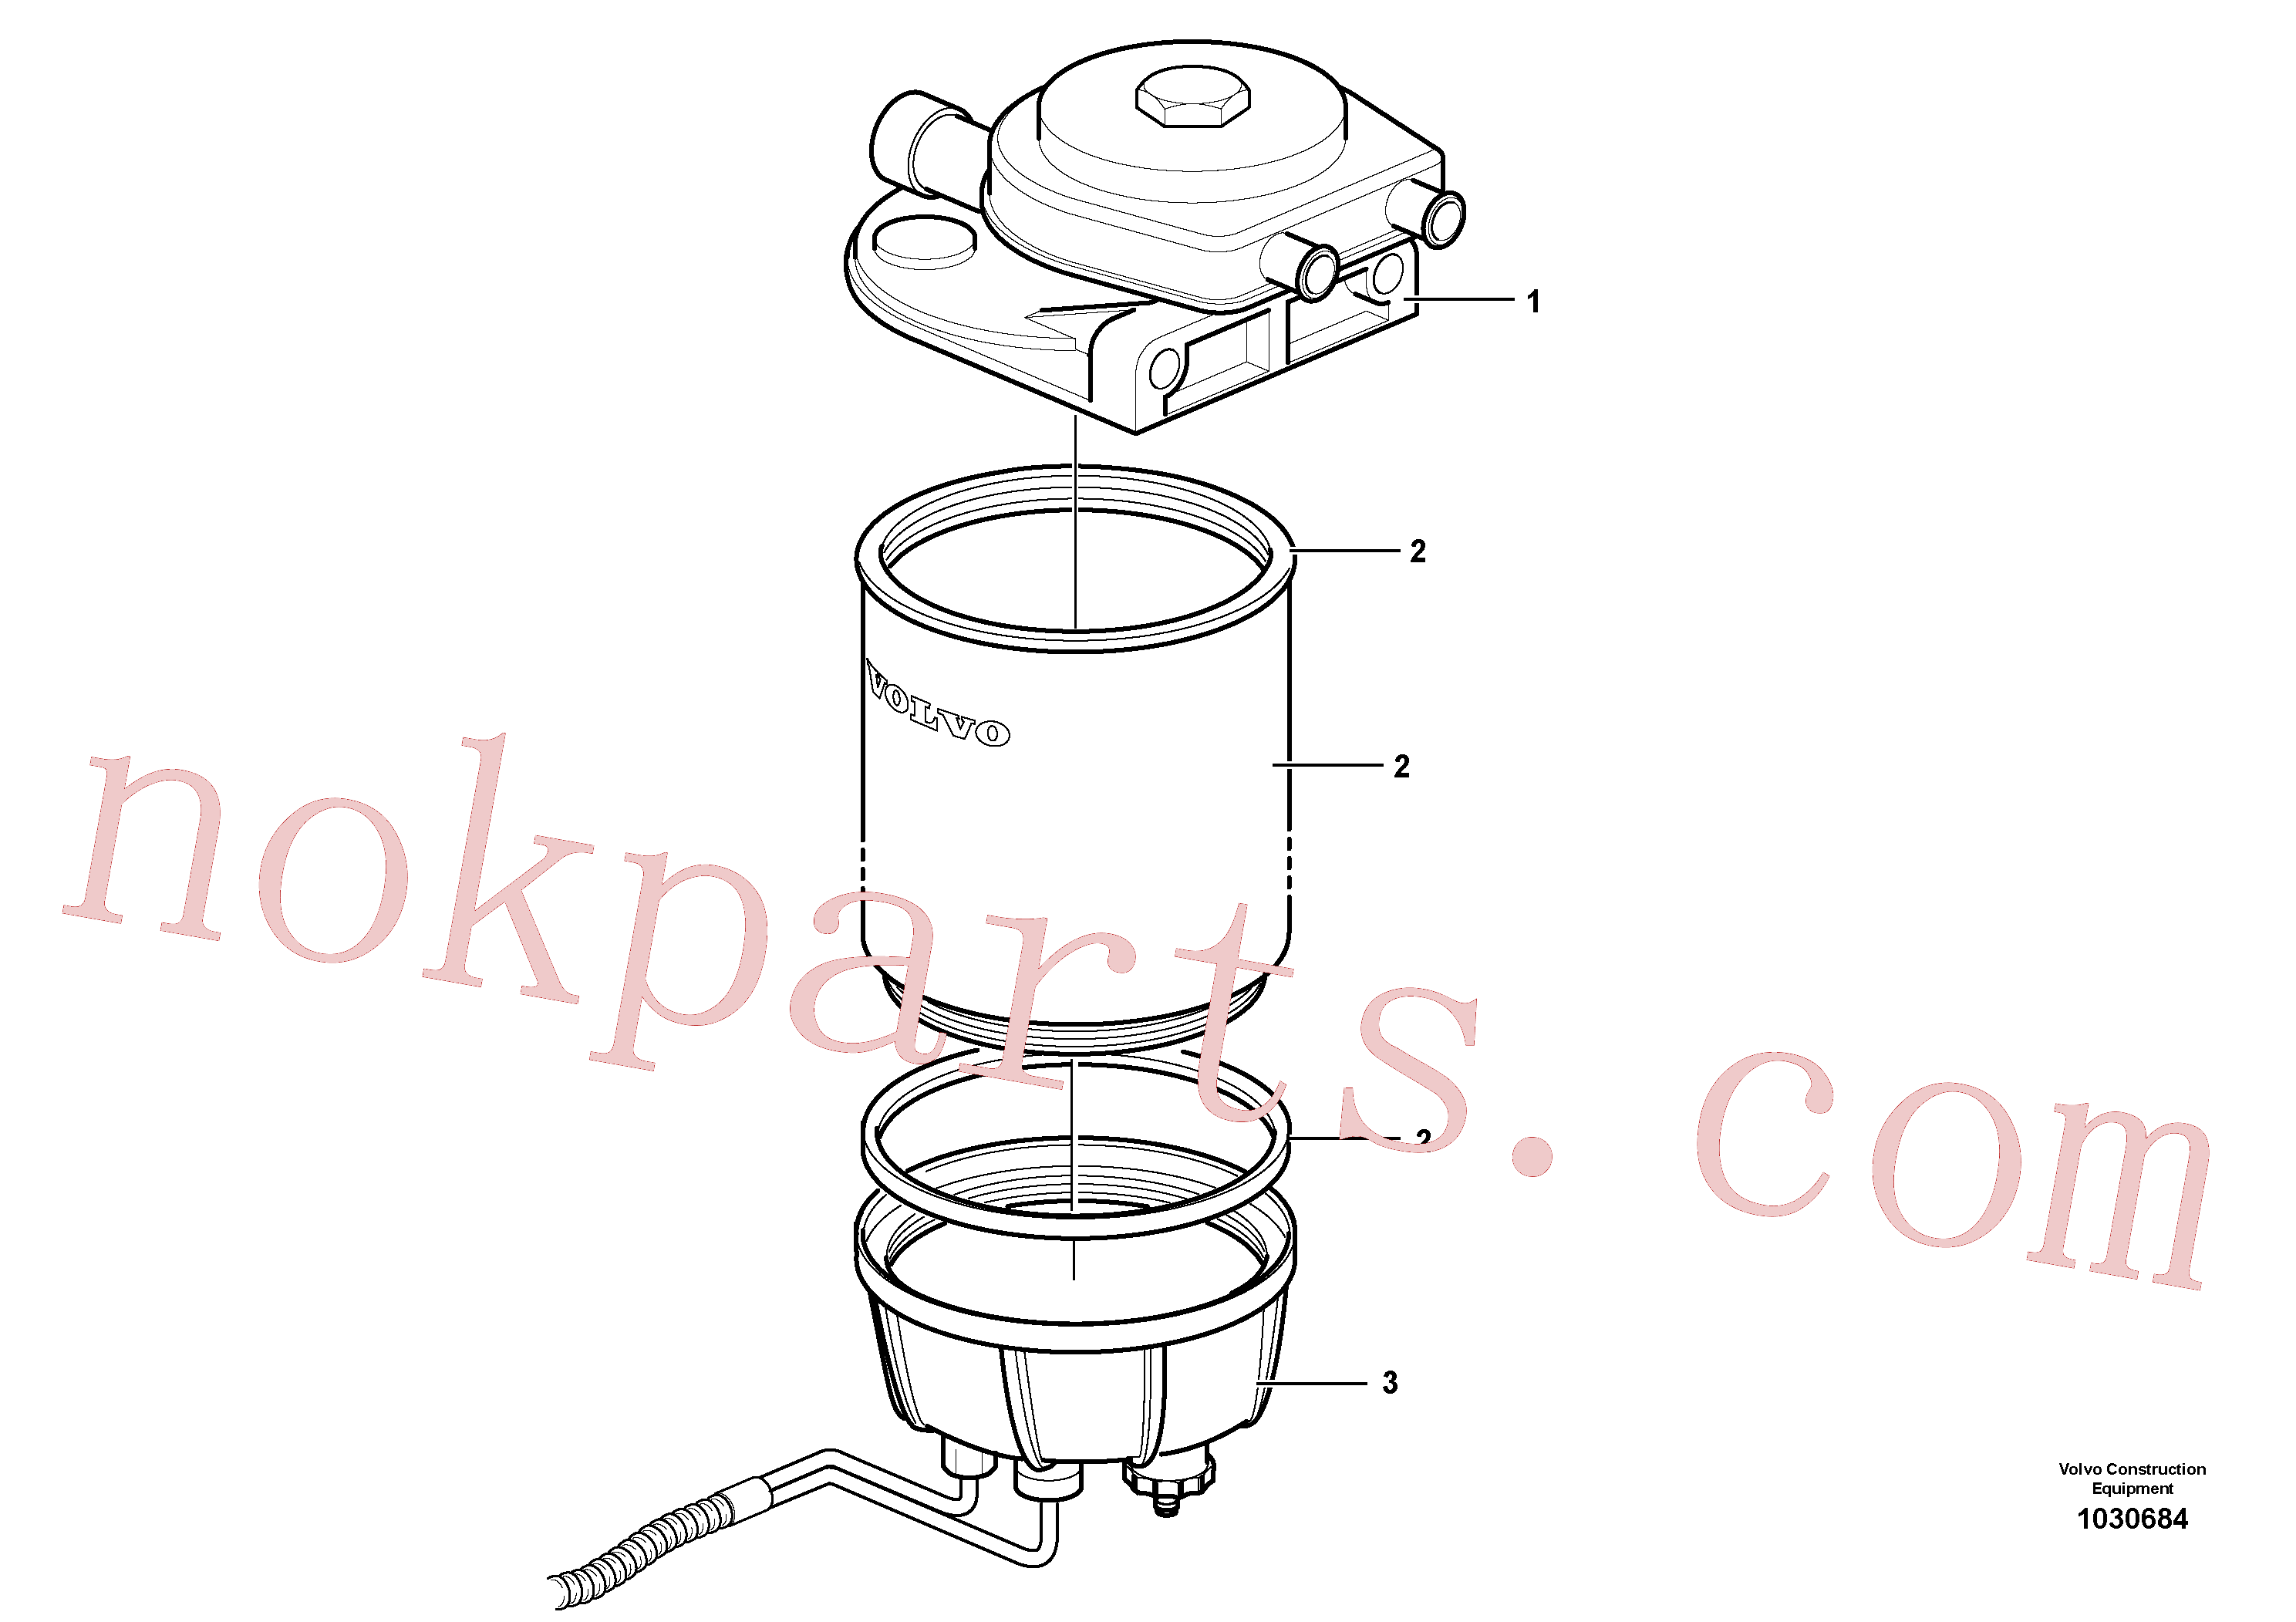 VOE11110683 for Volvo Water separator.(1030684 assembly)